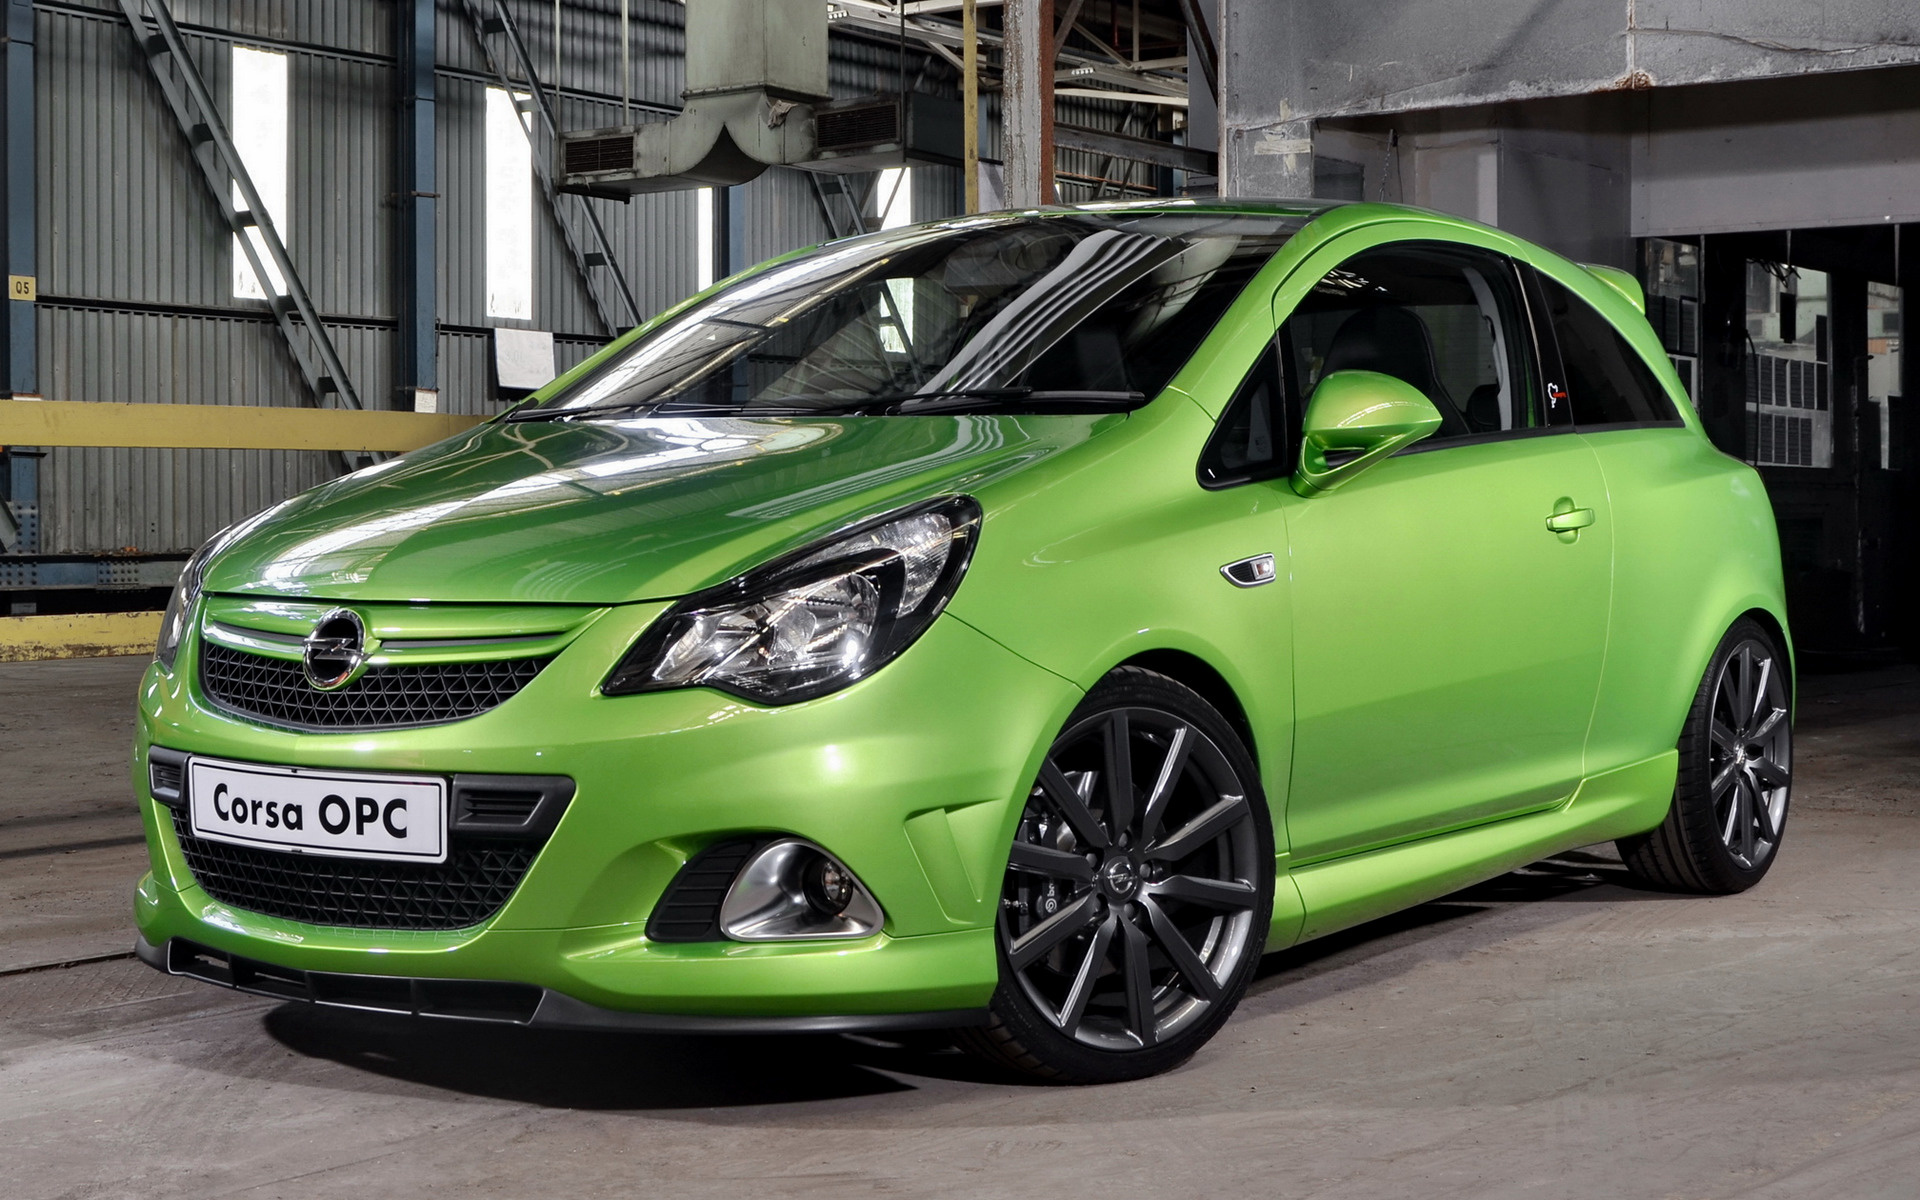 2012 Opel Corsa Opc Nurburgring Edition 3 Door Za Wallpapers